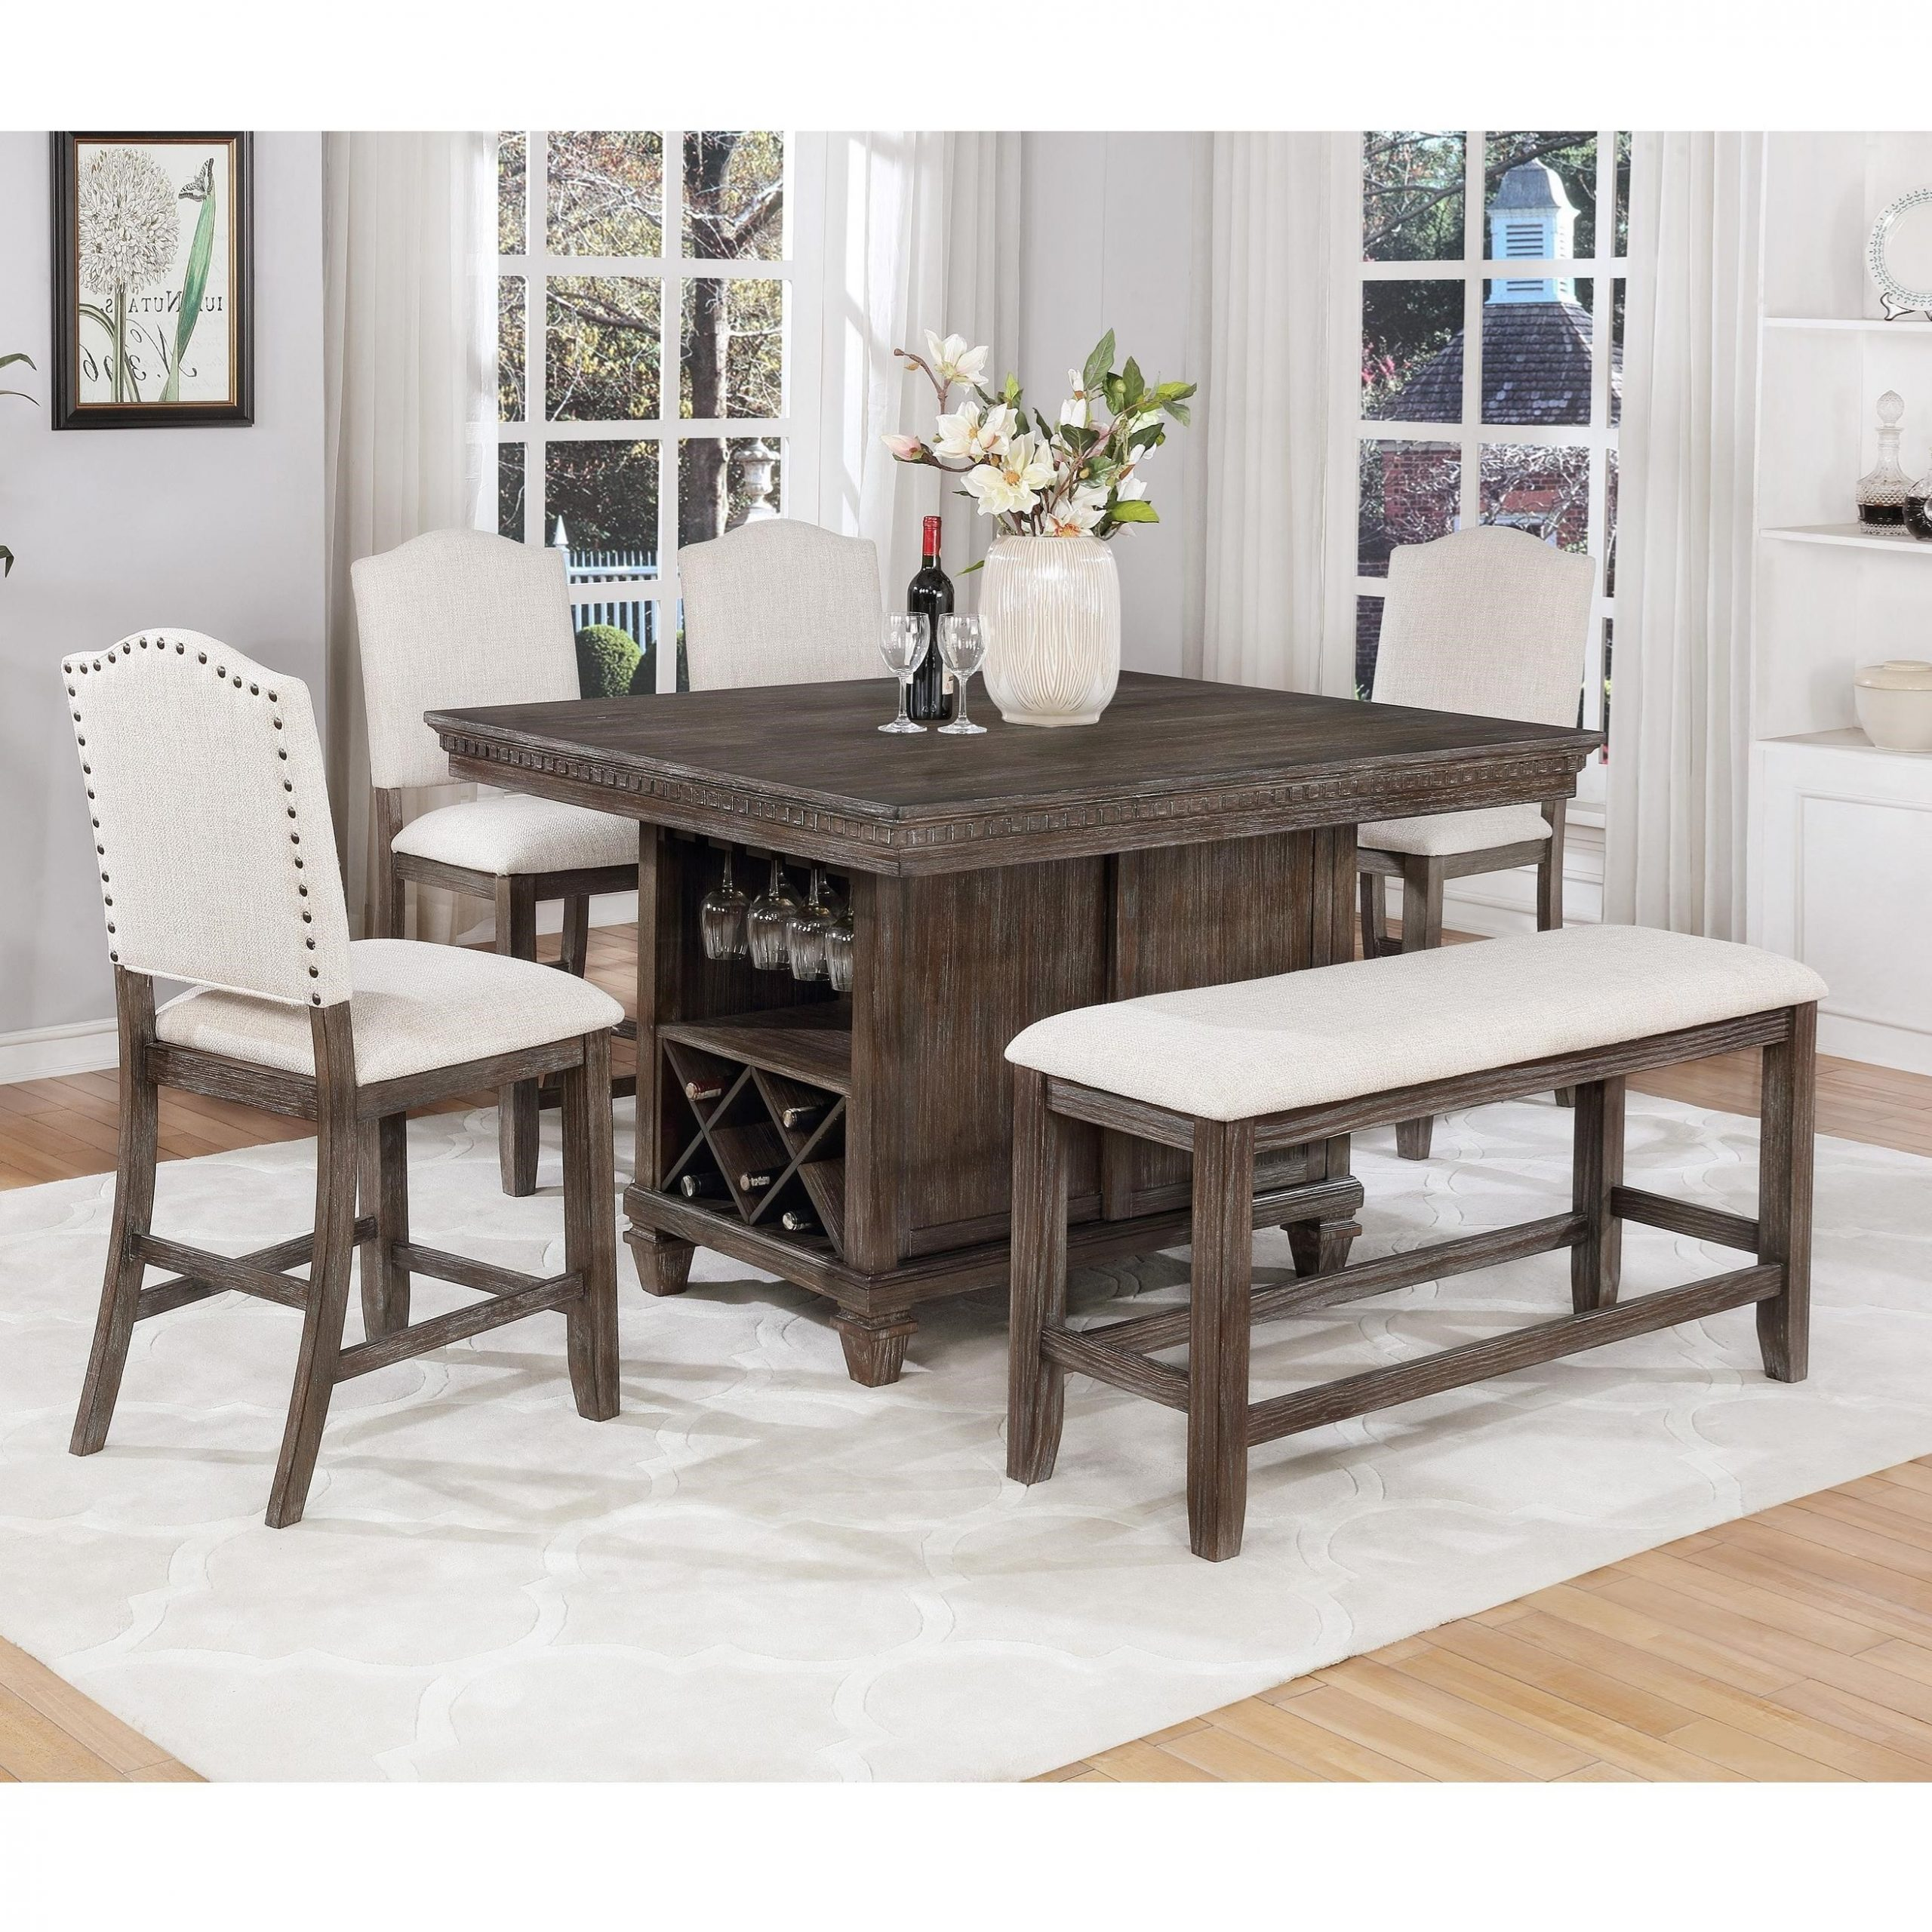 Regent 6 Piece Counter Height Dining Setdel Sol Cm At Del Sol Furniture With Regard To 2018 Avondale Counter Height Dining Tables (View 14 of 25)